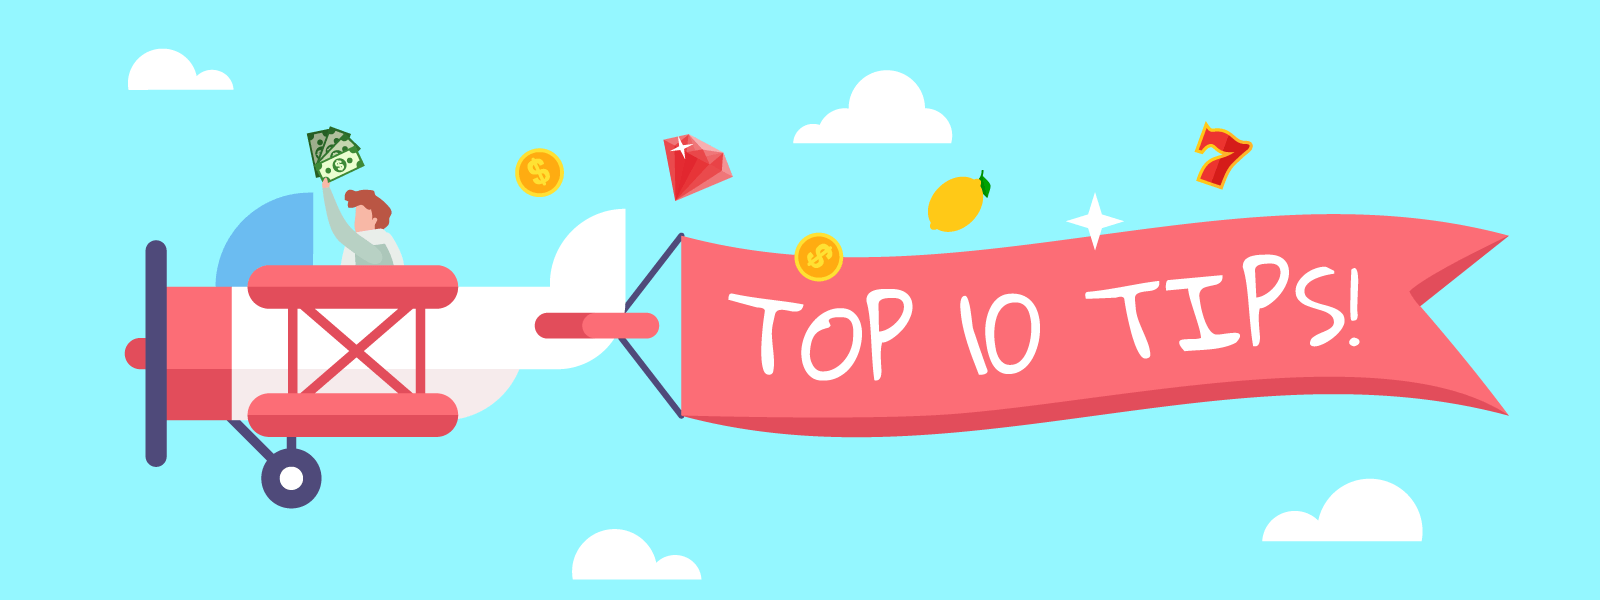 Top 10 Tips Hero